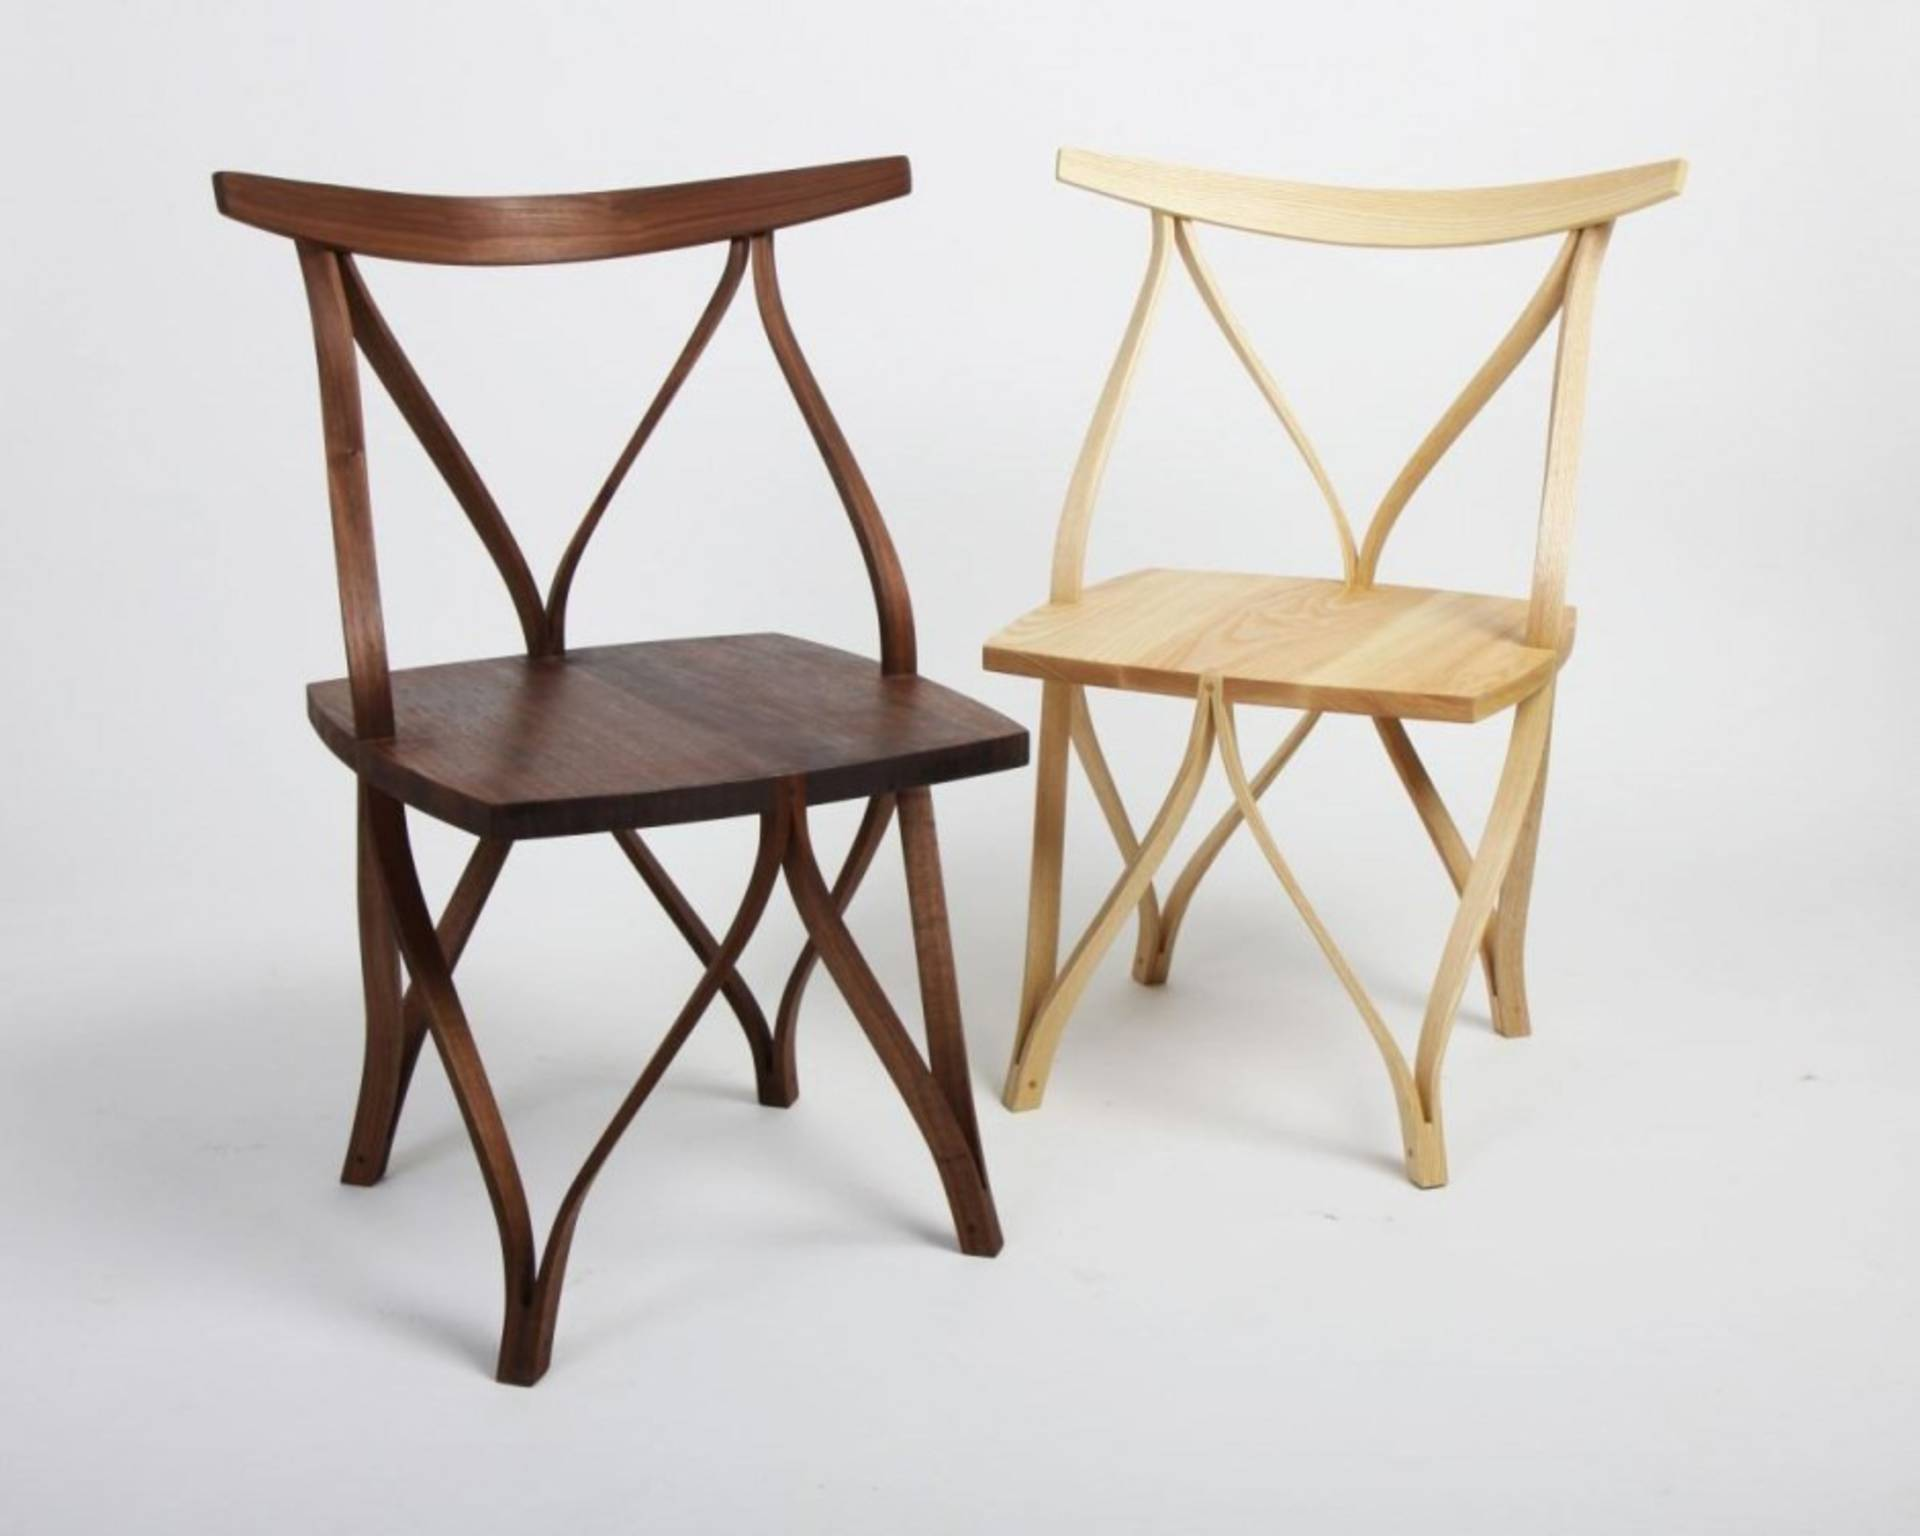 Steam Bentwood Chairs By Dohoon Kim